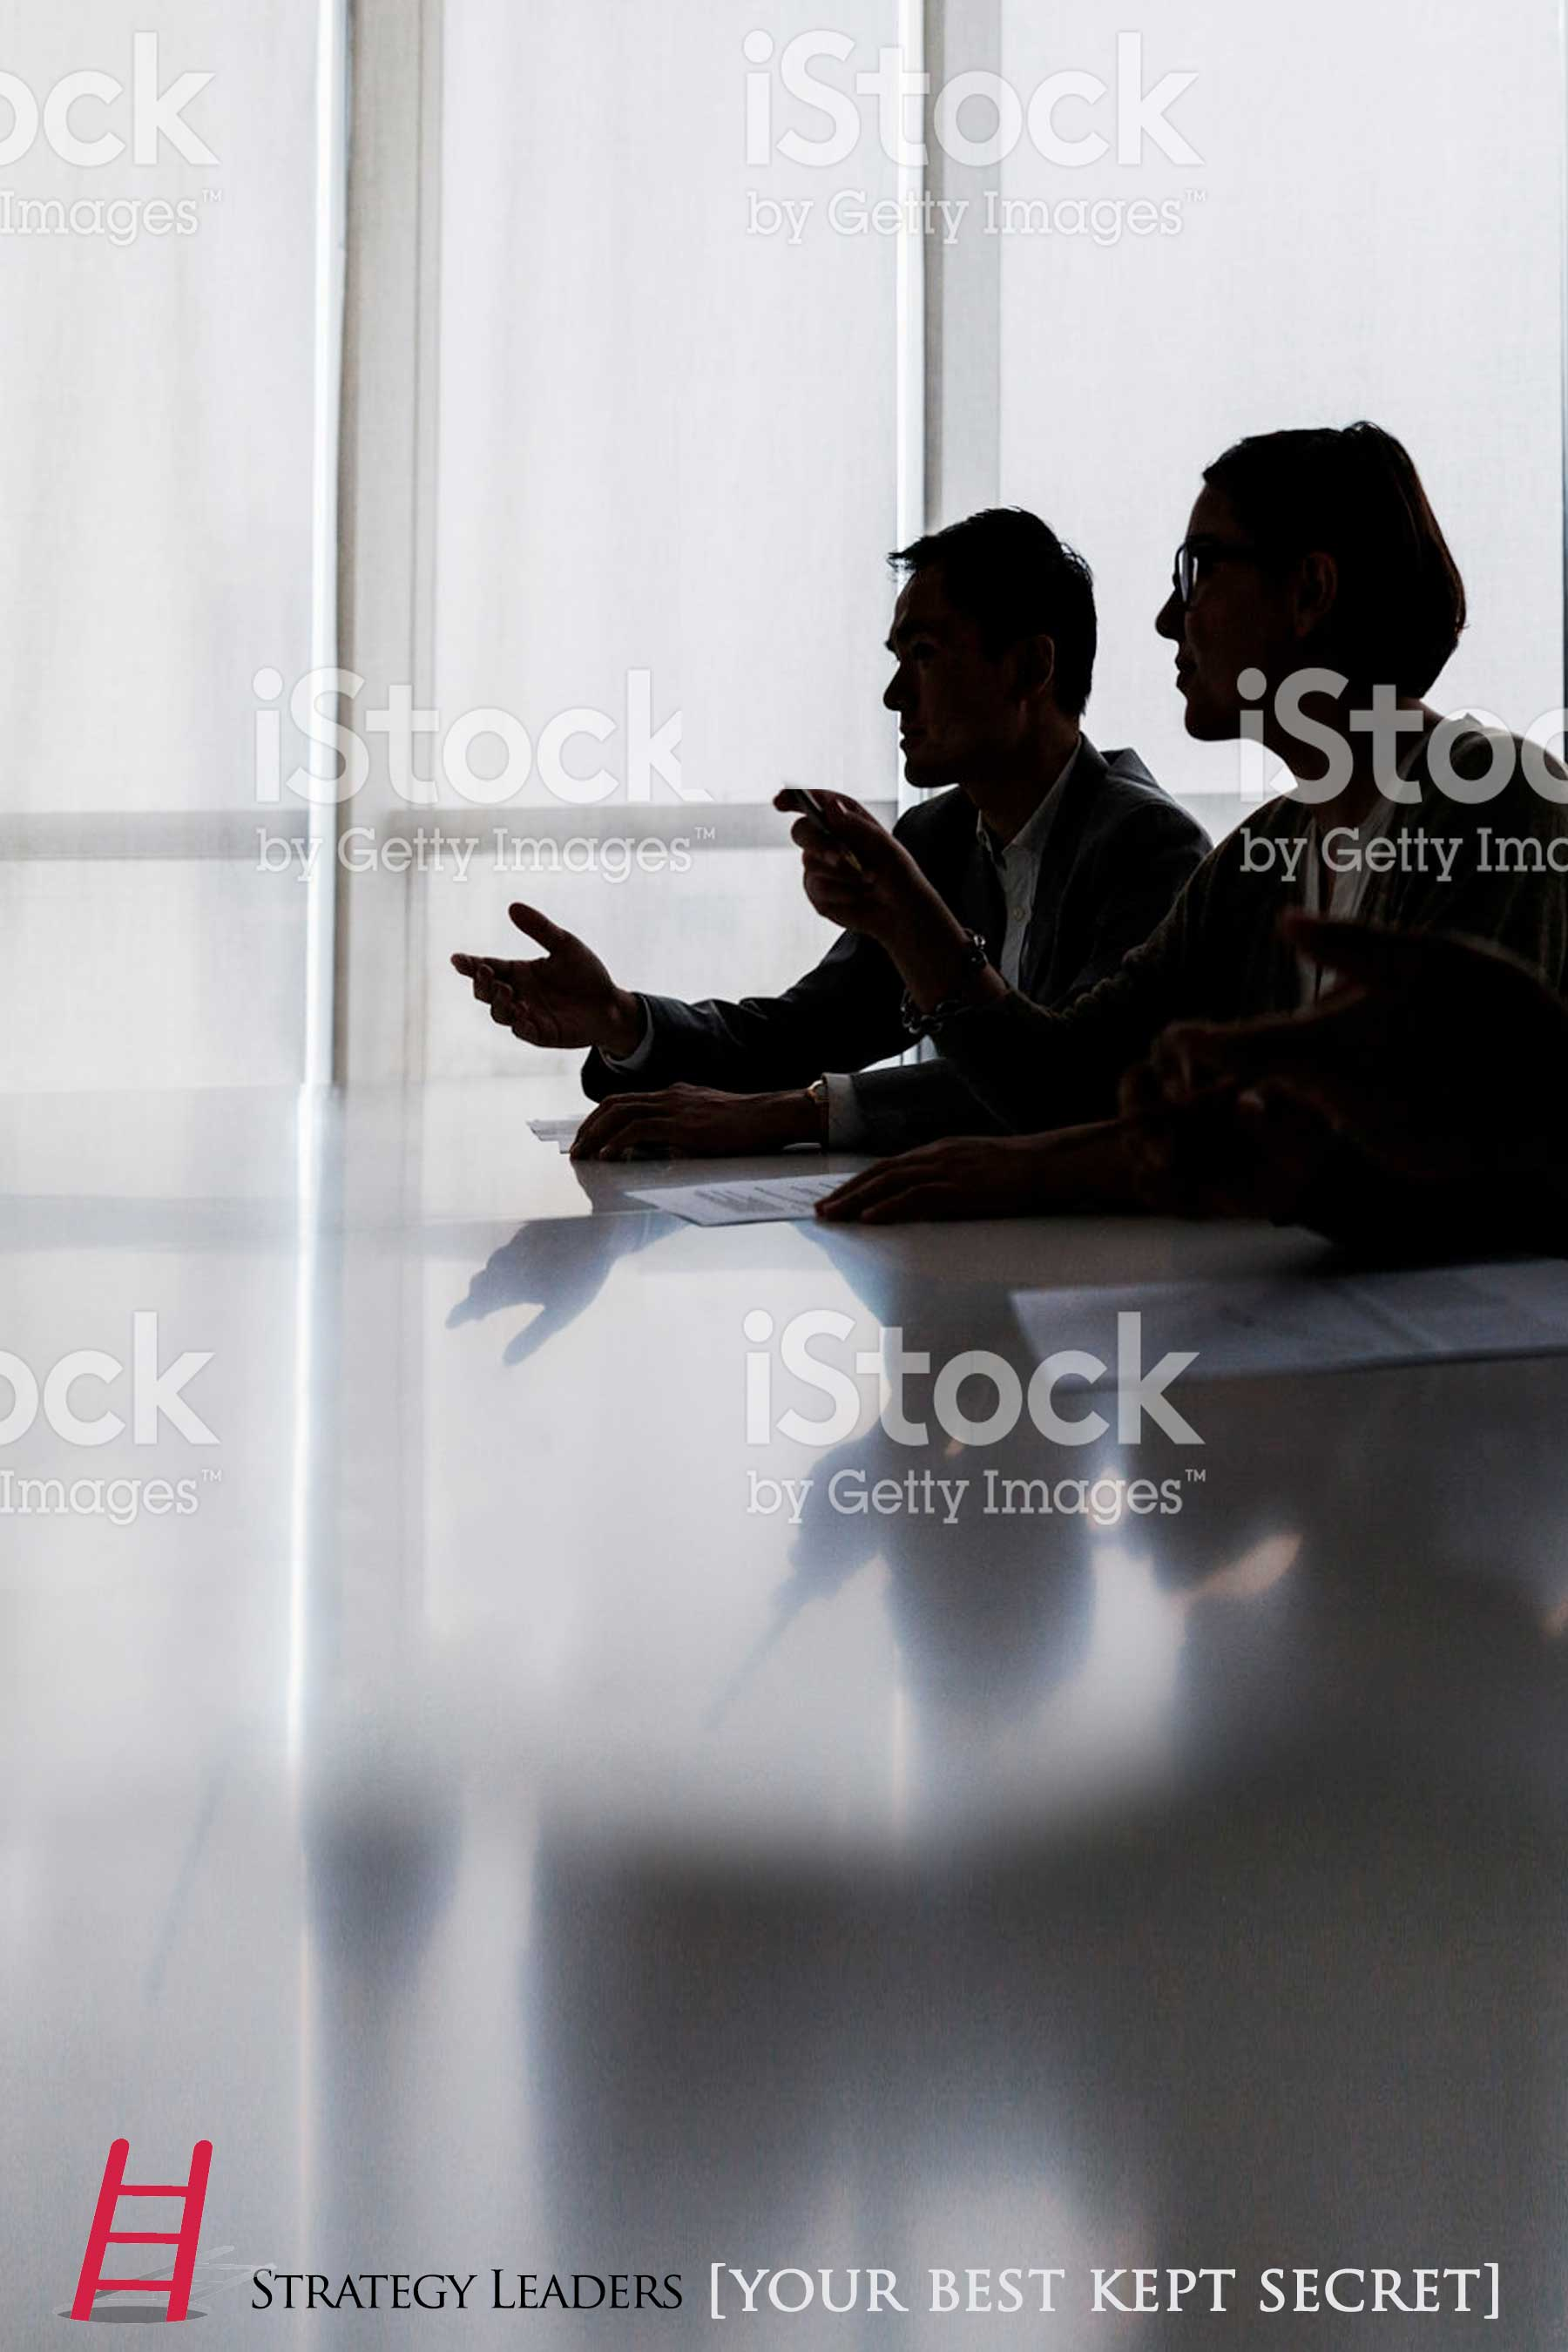 ad-best-kept-secret-board-meeting